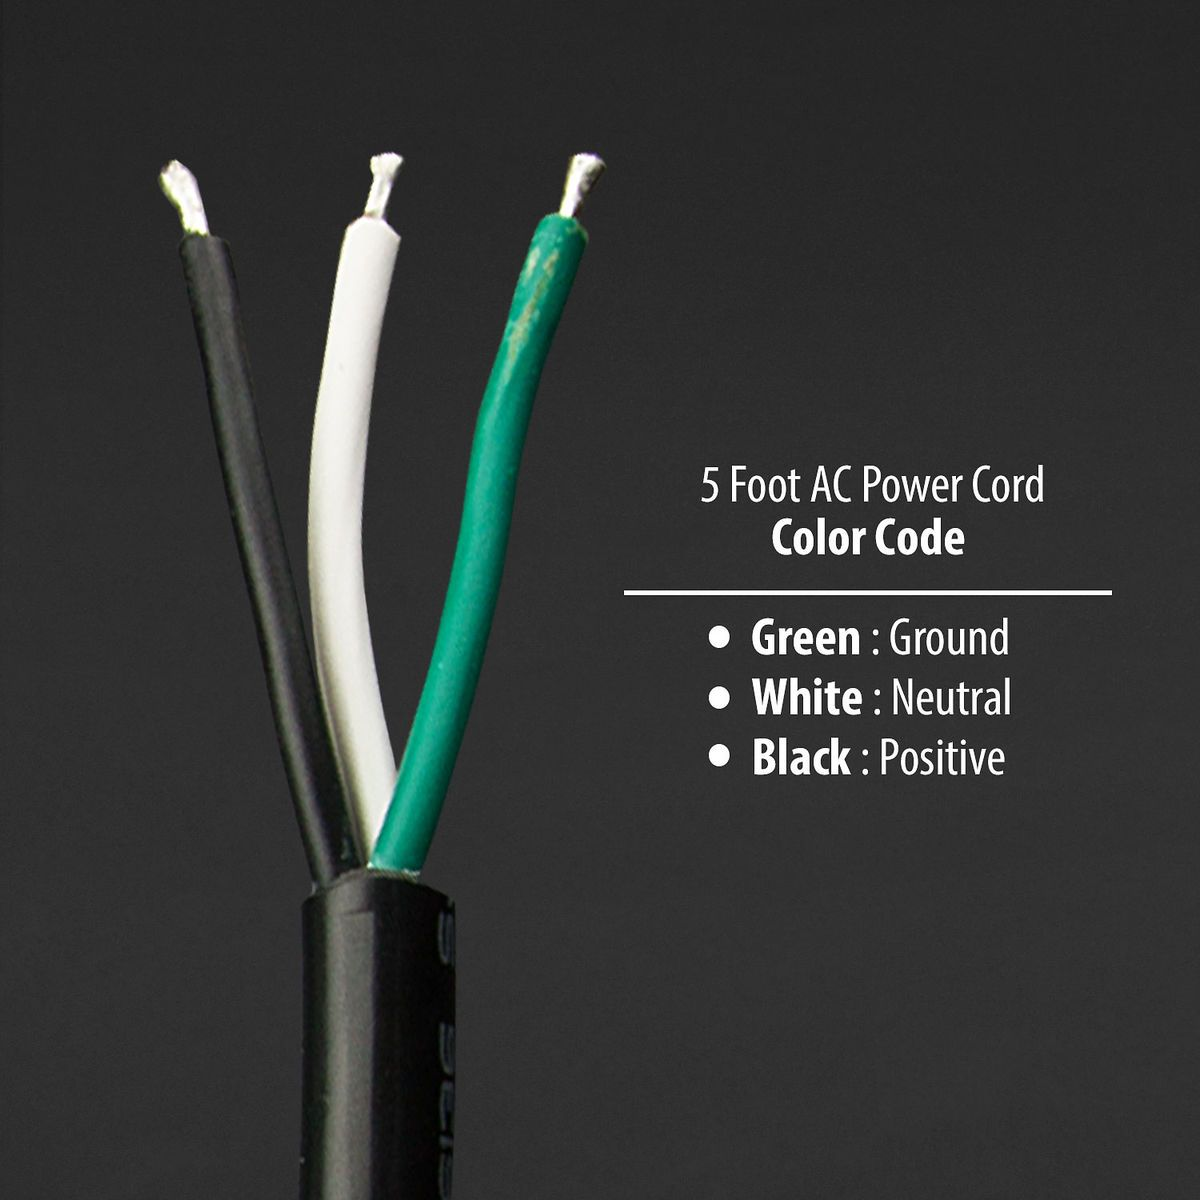 5 Feet Ac Power Cord In 2020 Electrical Wiring Colours Black And Red Diagram Design